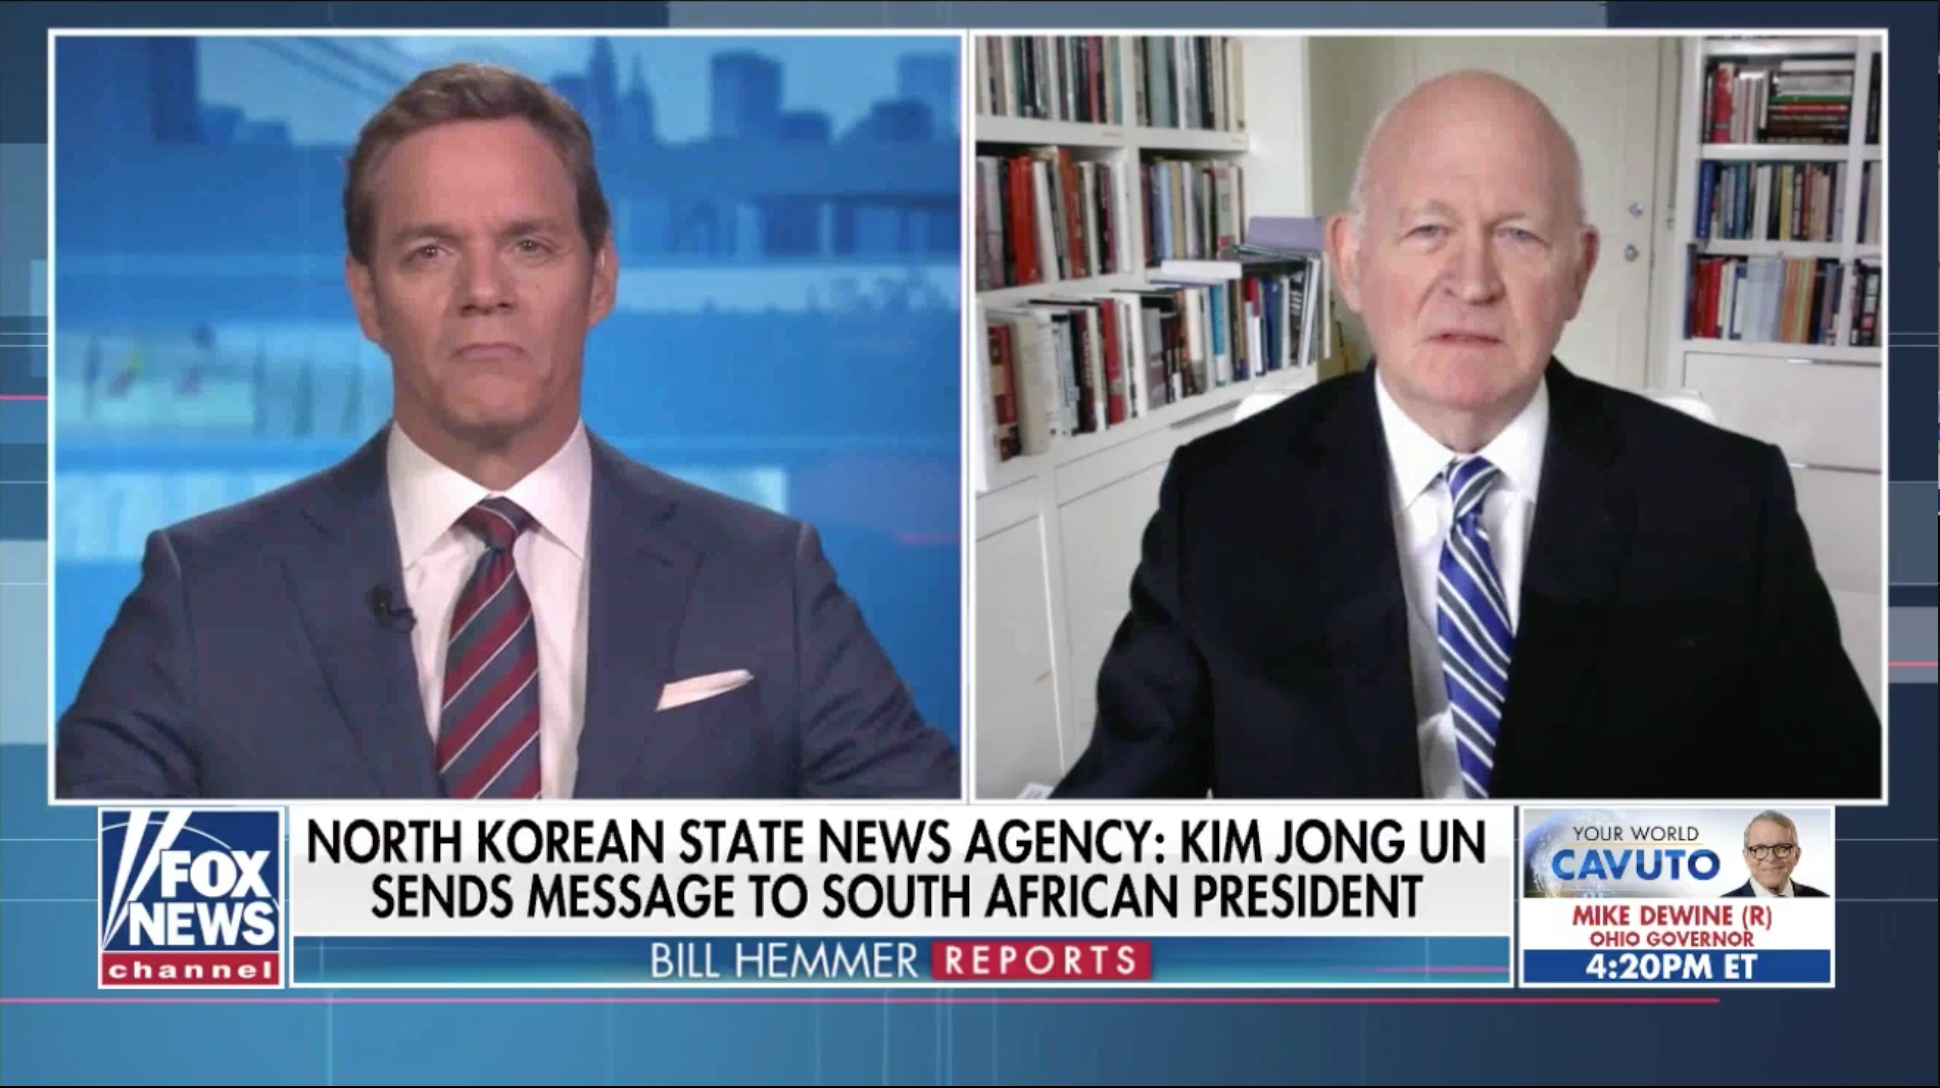 Bill Hemmer on Fox News, Michael Pillsbury discusses rumors surrounding Kim Jong Un's health.